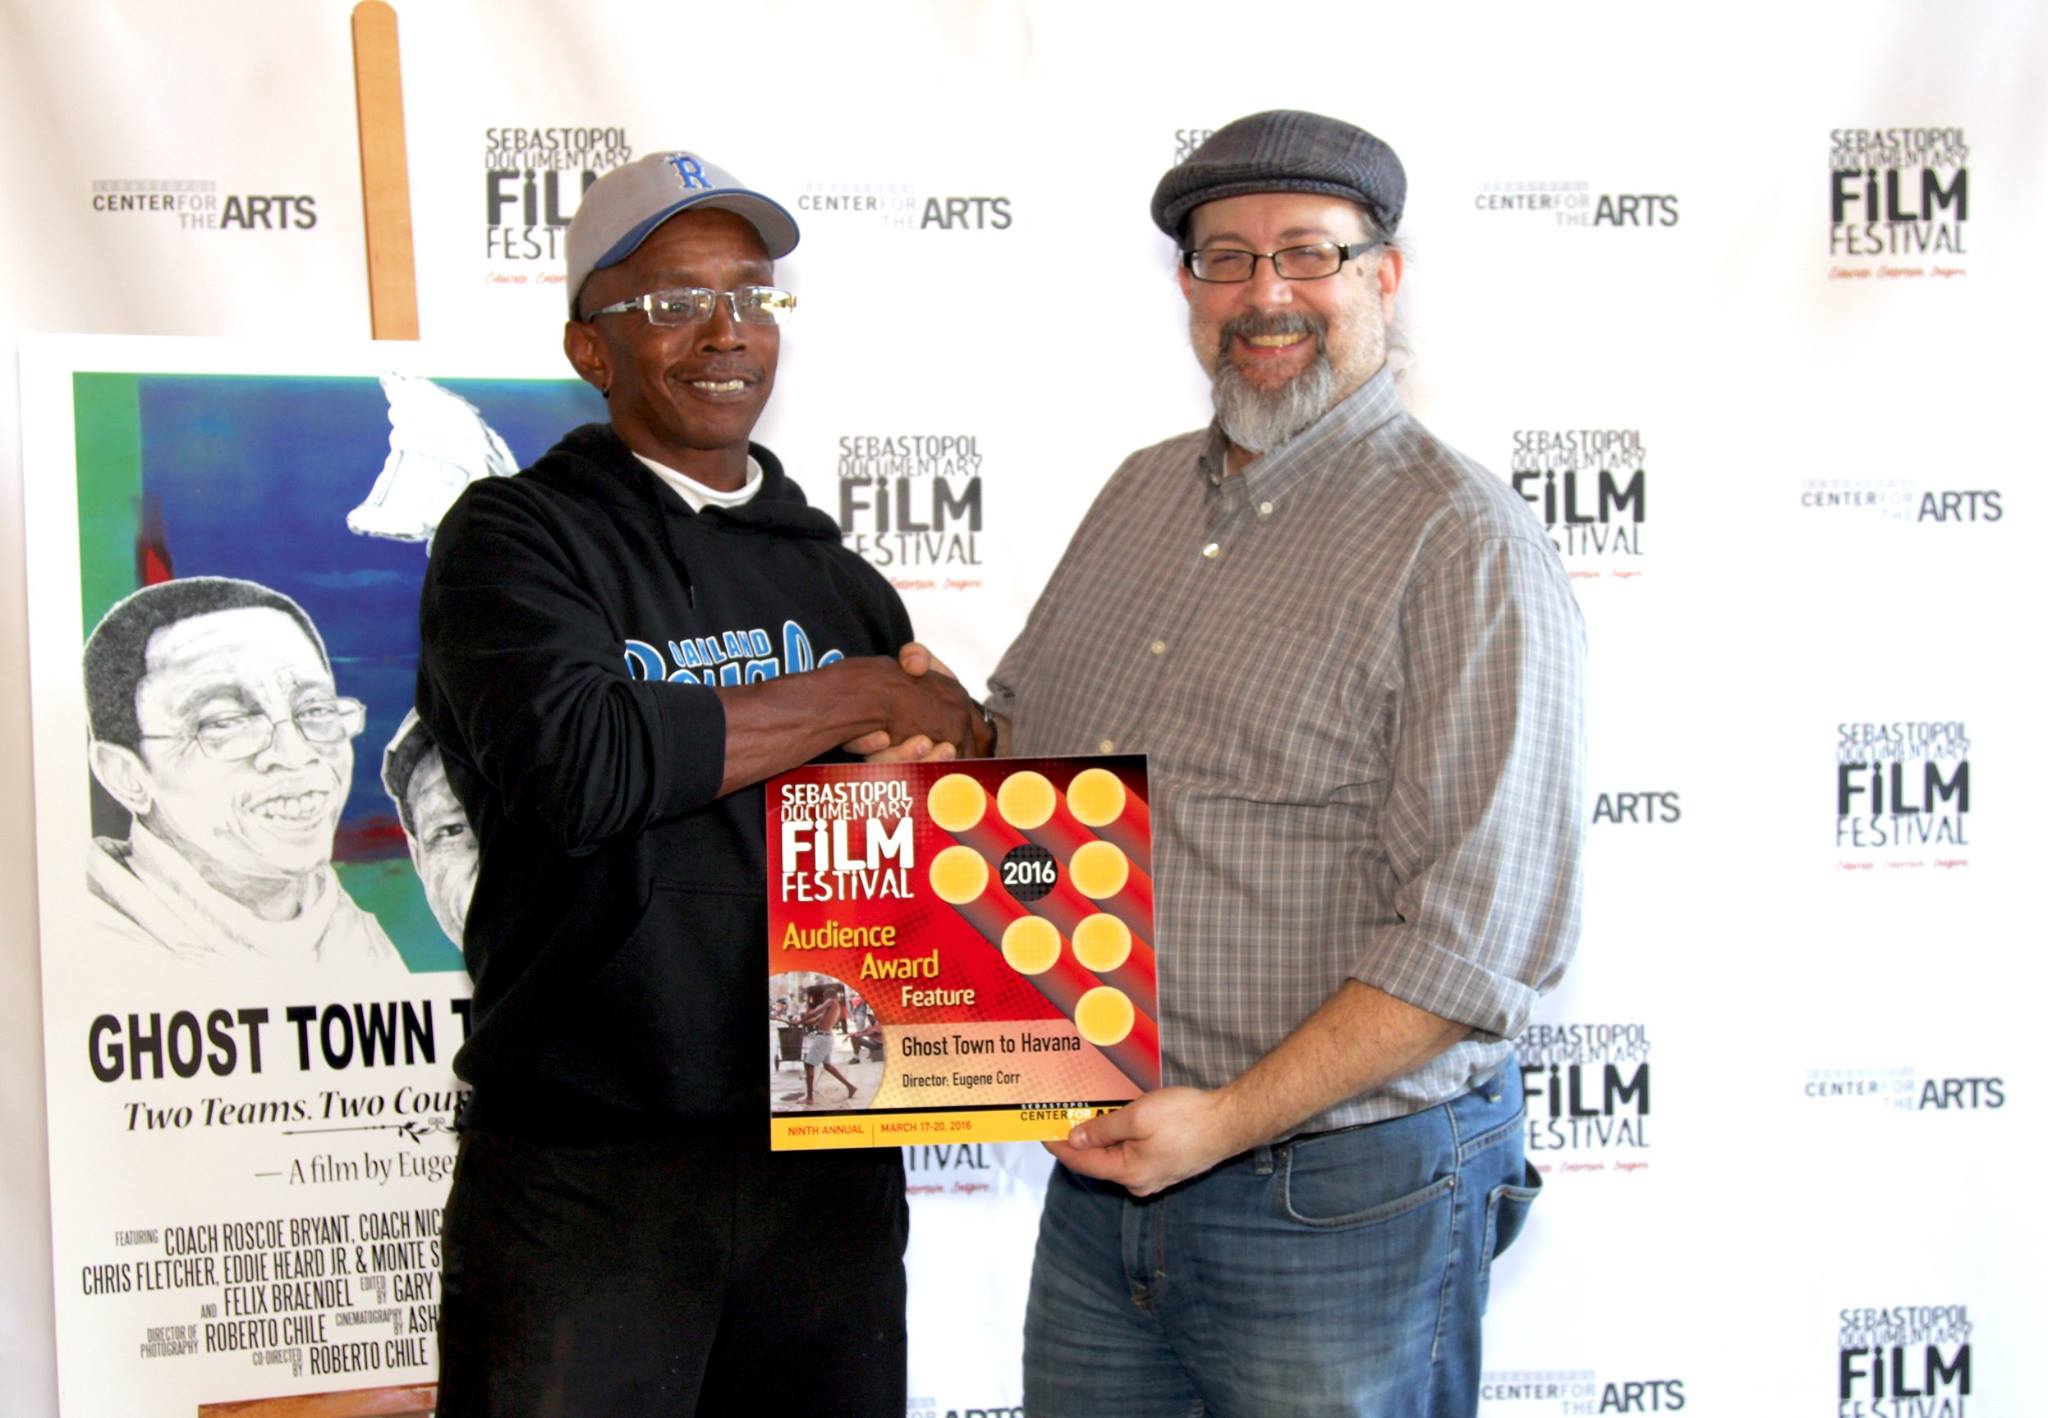 Coach Roscoe Bryant accepts the Sebastopol Documentary Film Festival Audience Award from Festival Director Randy Hall on July 15th, 2016